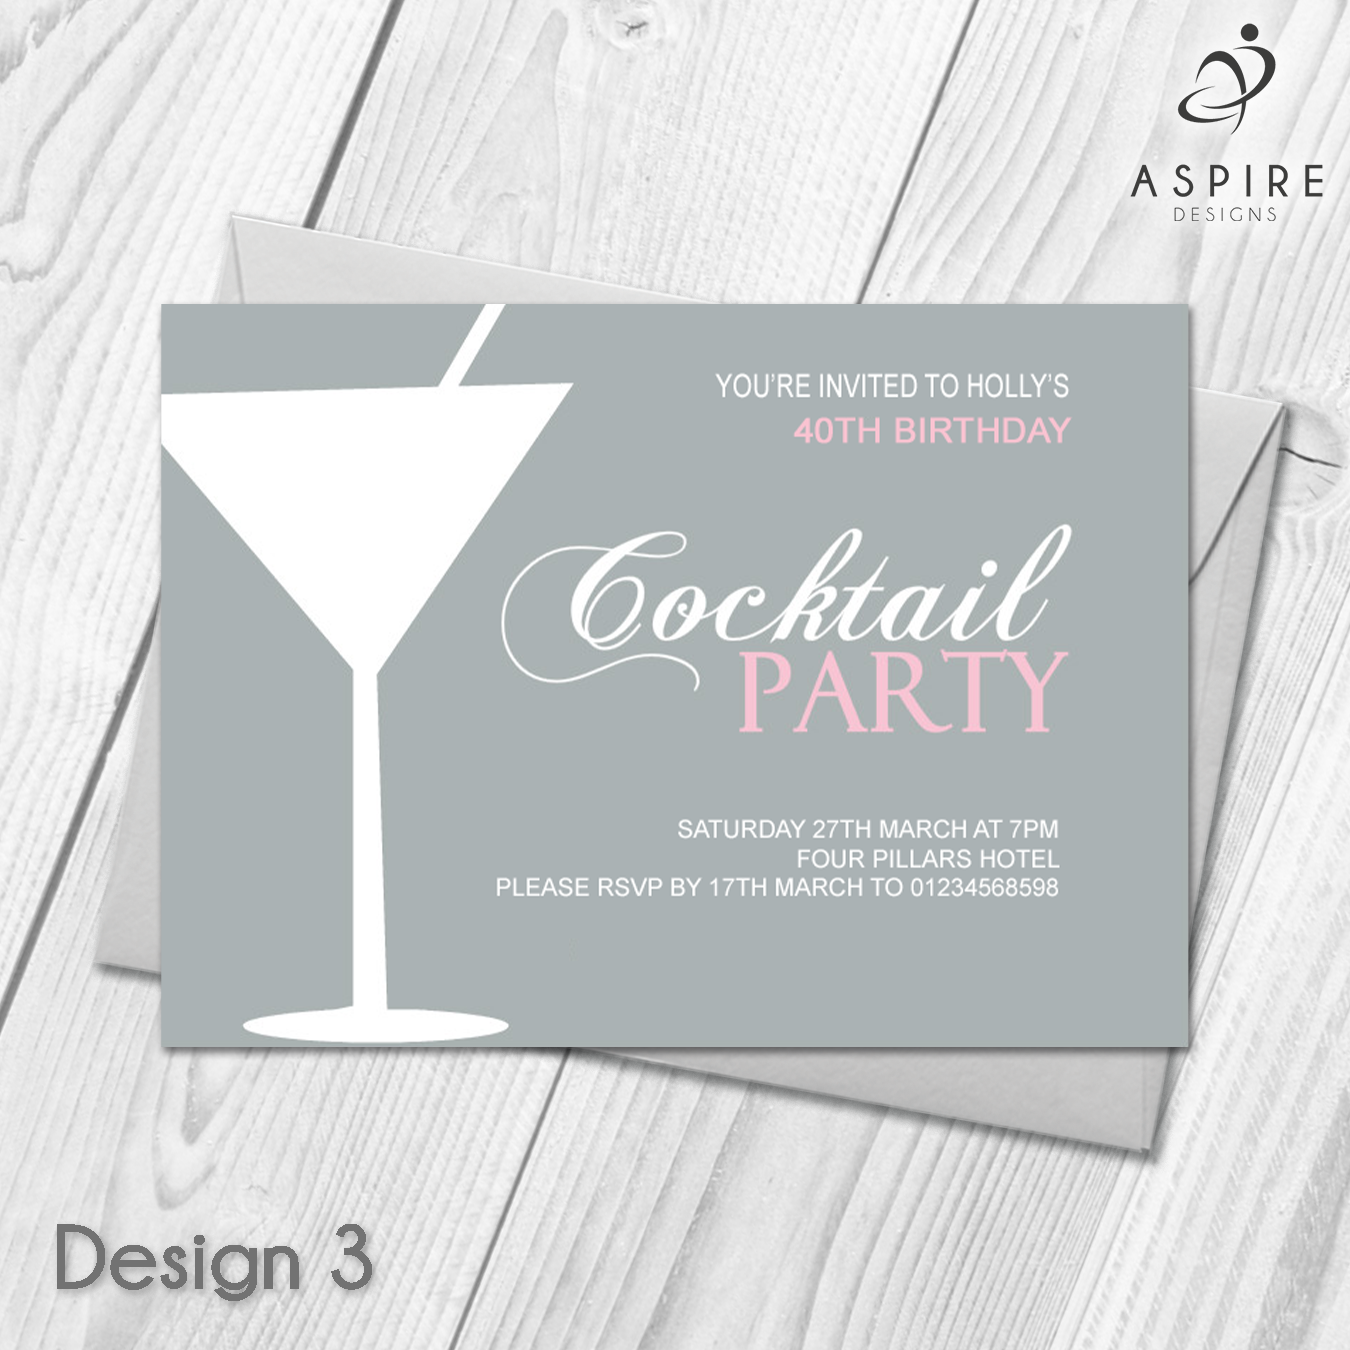 Details about Personalised Birthday Invitations | Party Invites ...